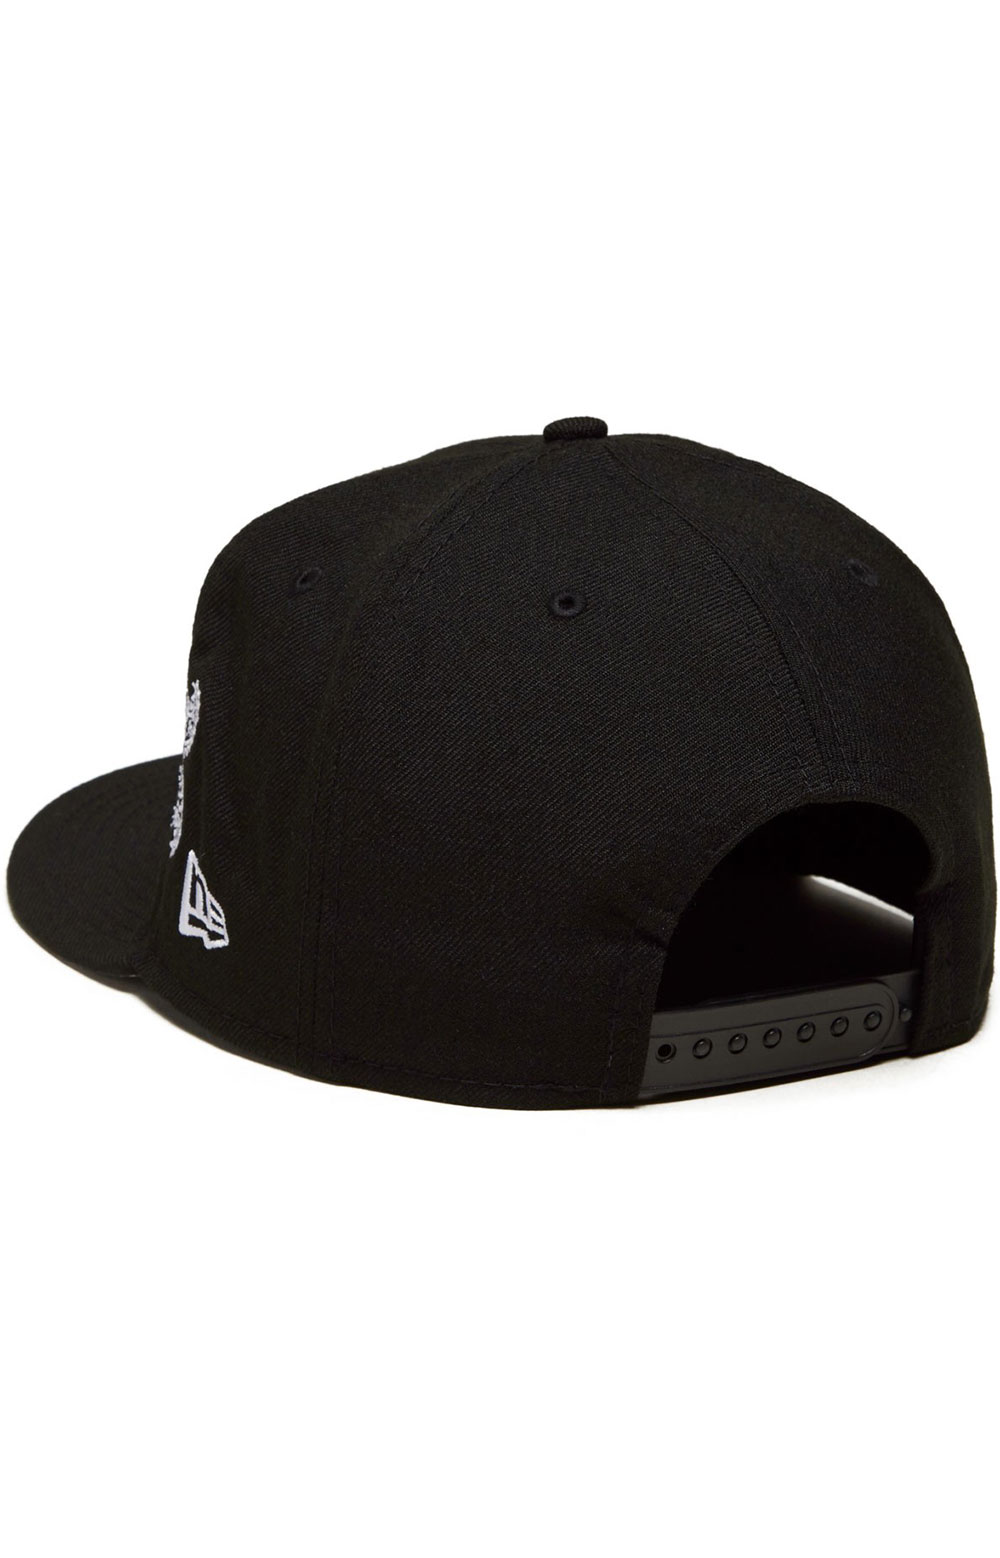 Los Angeles Dodgers Paisley Elements 59Fifty Fitted Hat - Black  2